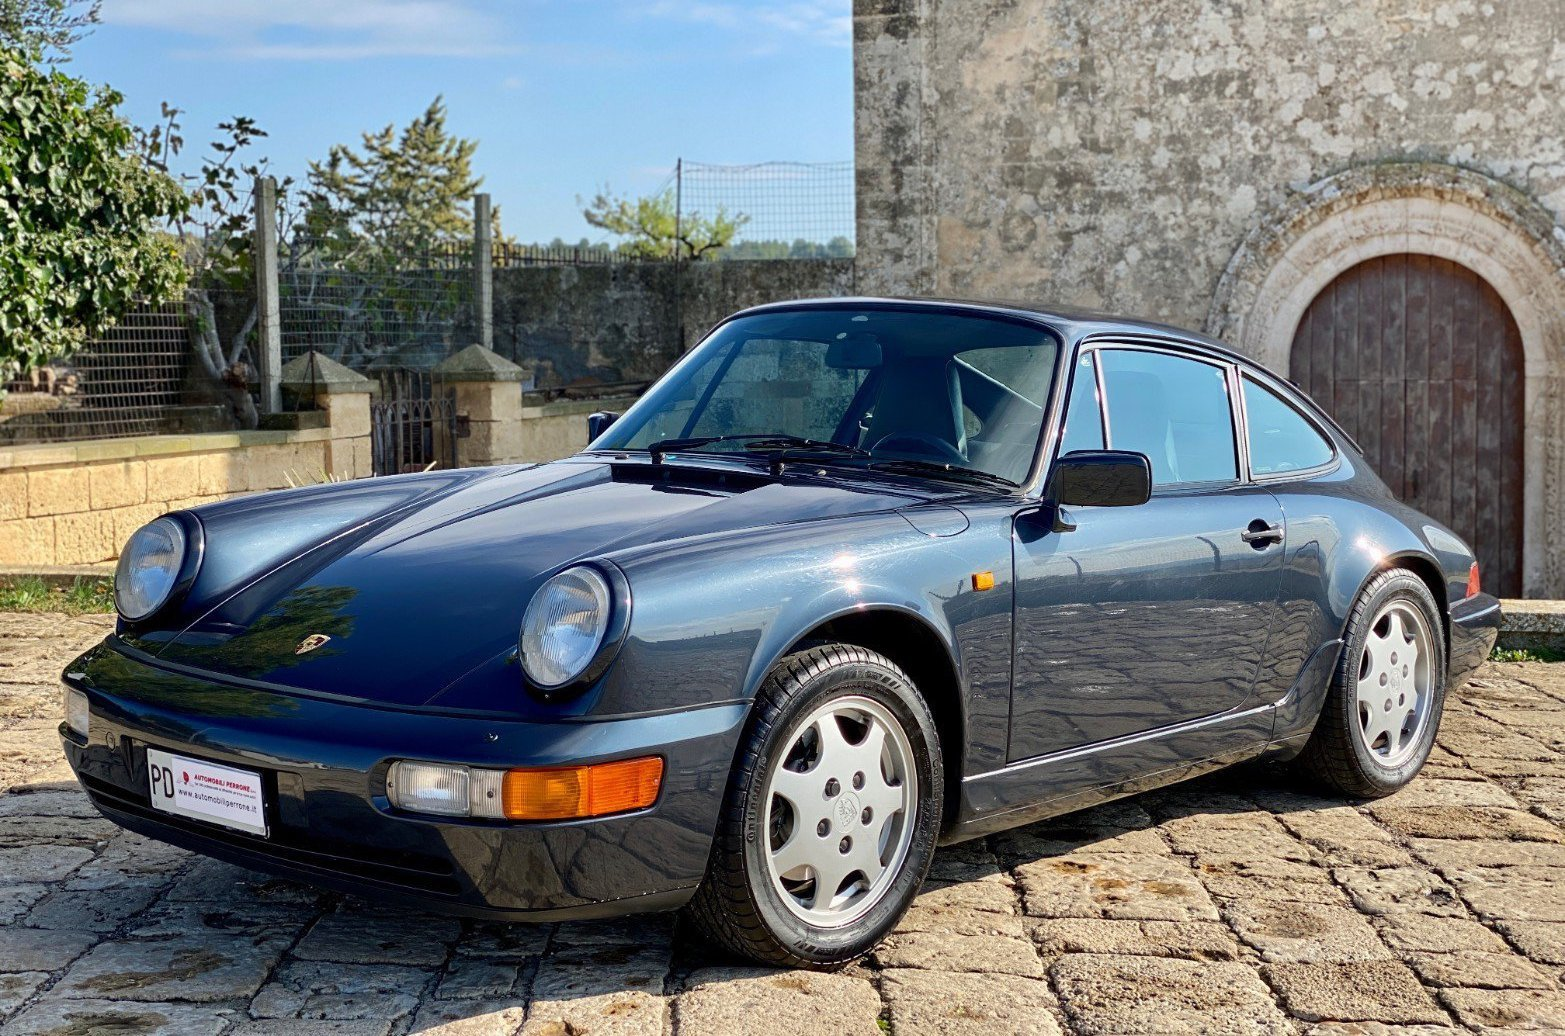 1990 Porsche 911 964 Carrera 2 Coupe Tiptronic For Sale (picture 1 of 6)